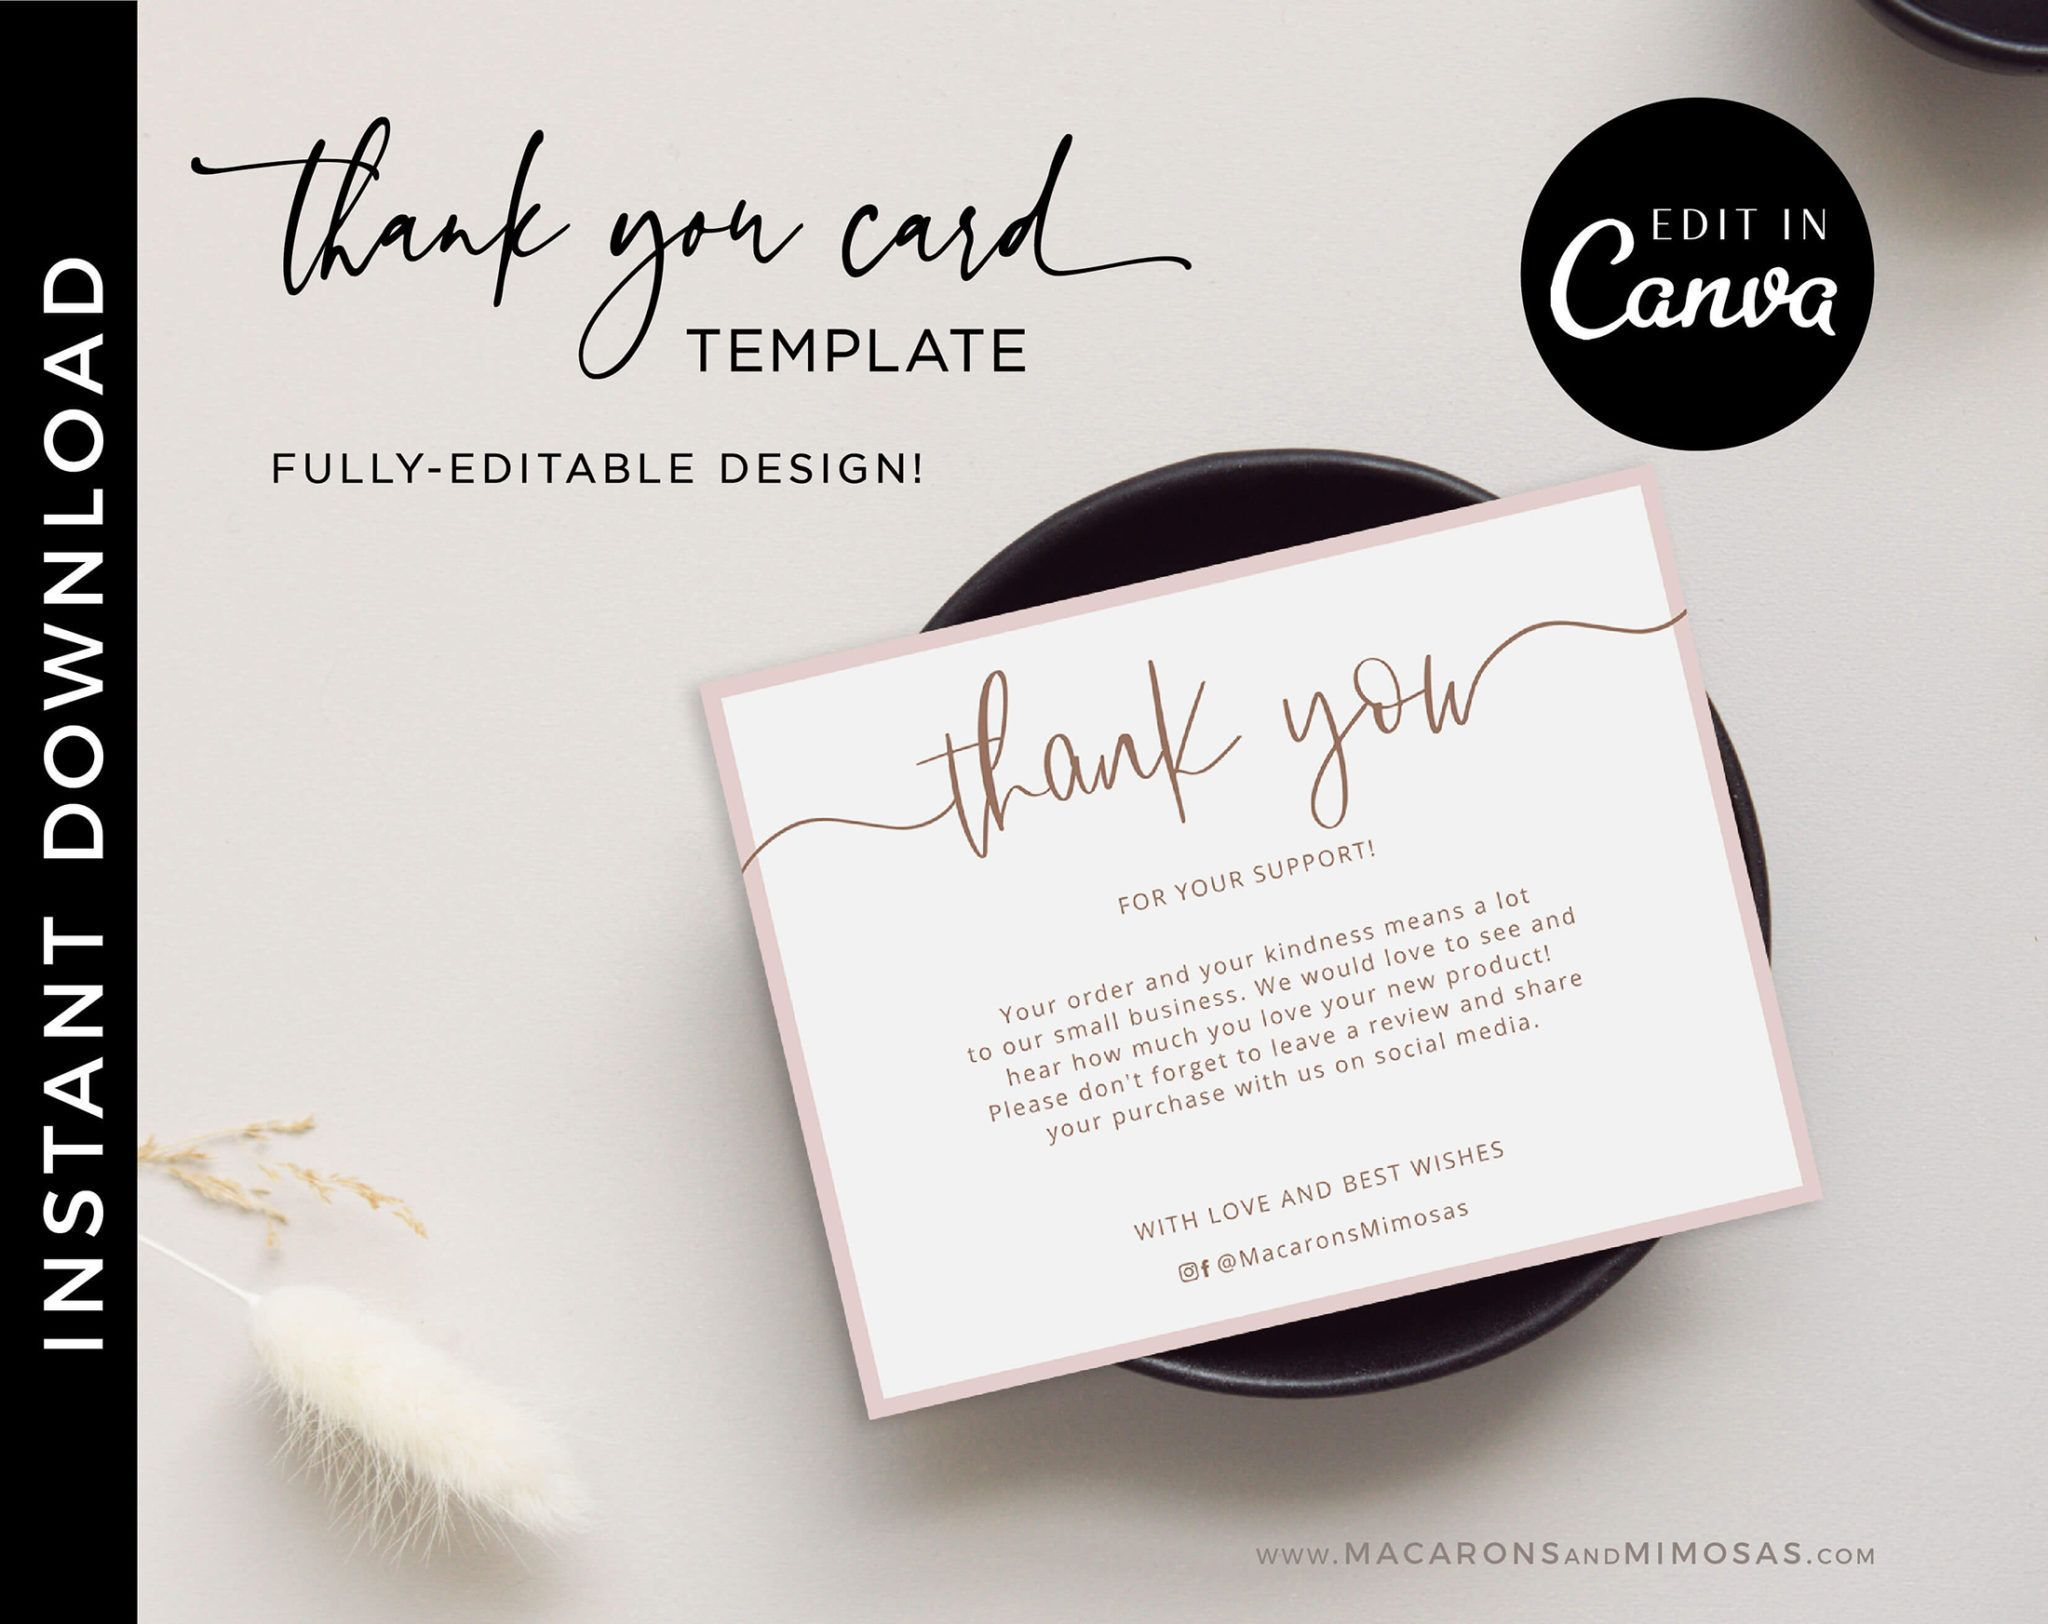 Kaylin Thank You Cards Macarons And Mimosas Business Card Template Design Business Card Design Thank You Cards